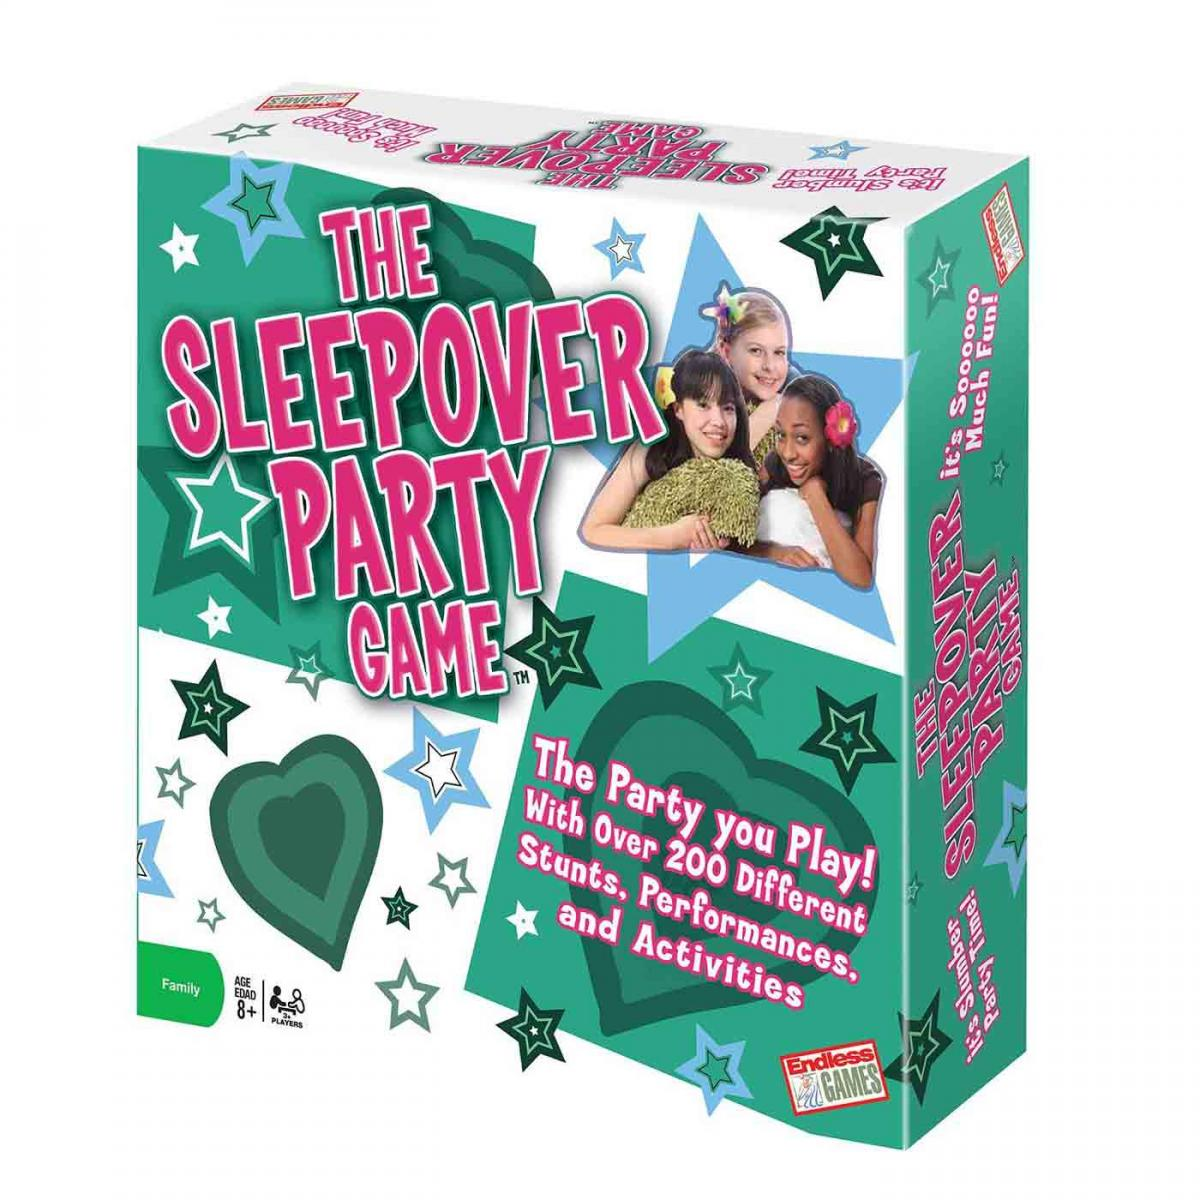 Sleepover Party - The Party You Play